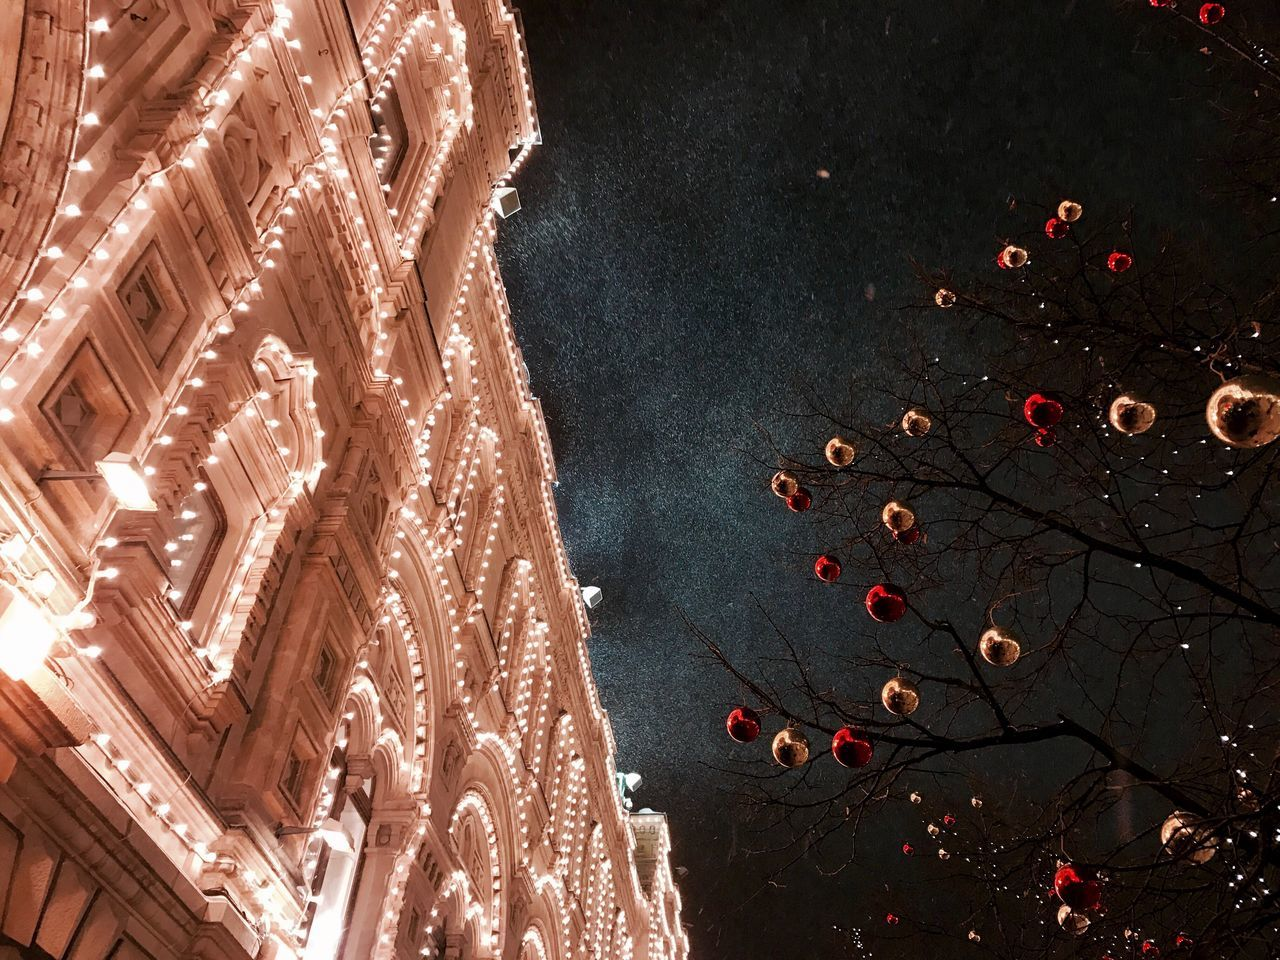 Moscow Celebration Night Tree No People Motion Outdoors Sky Nature Astronomy Outdoor Photography Culture EyeEmNewHere Travel Destinations Walking Around The City  Illuminated Built Structure Low Angle View City Life Scenics Winter